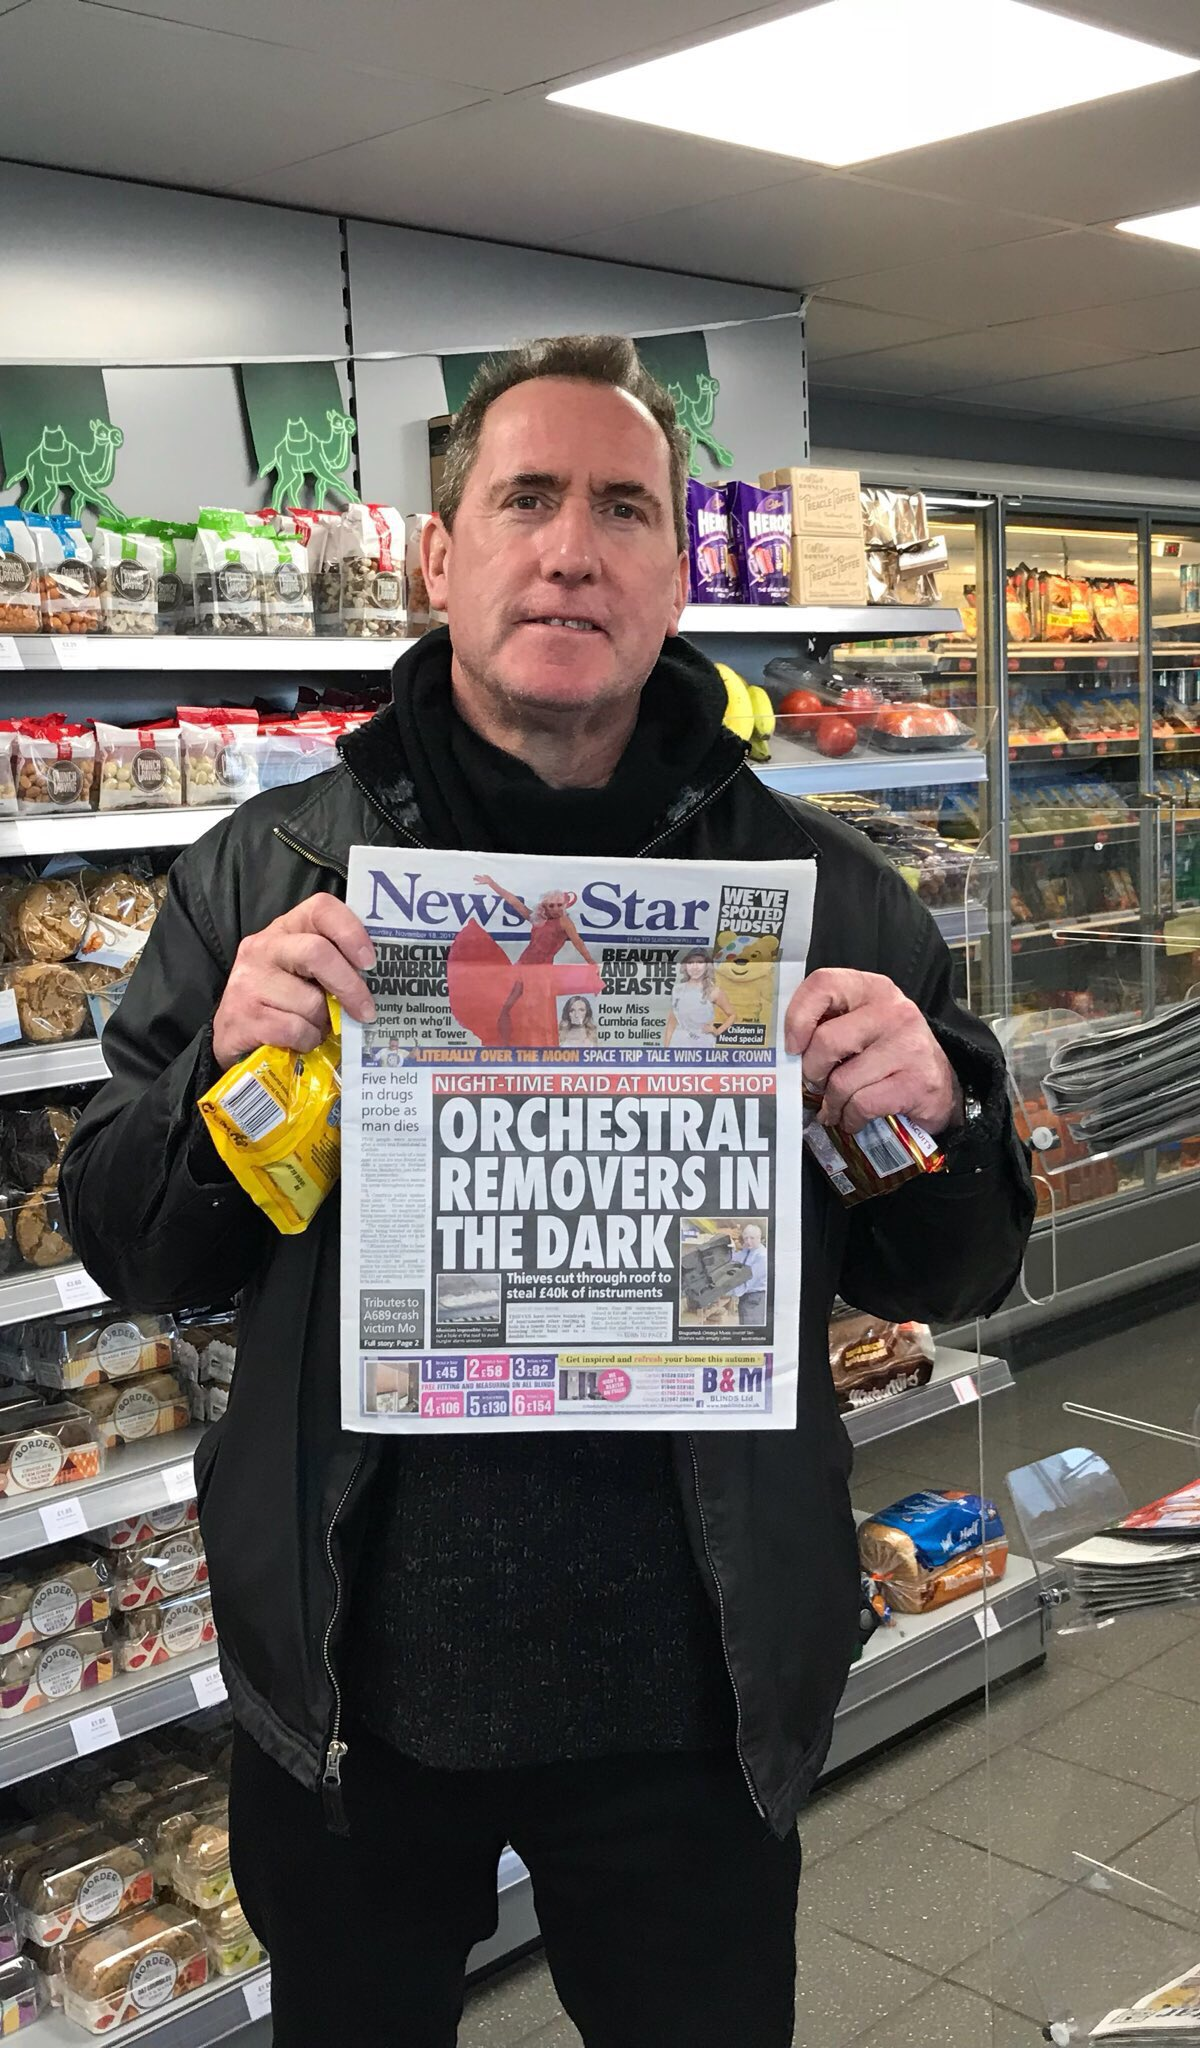 RT @OfficialOMD: Passing through Cumbria, thought we'd pick a copy of the local paper up... https://t.co/7rMhb01nl4